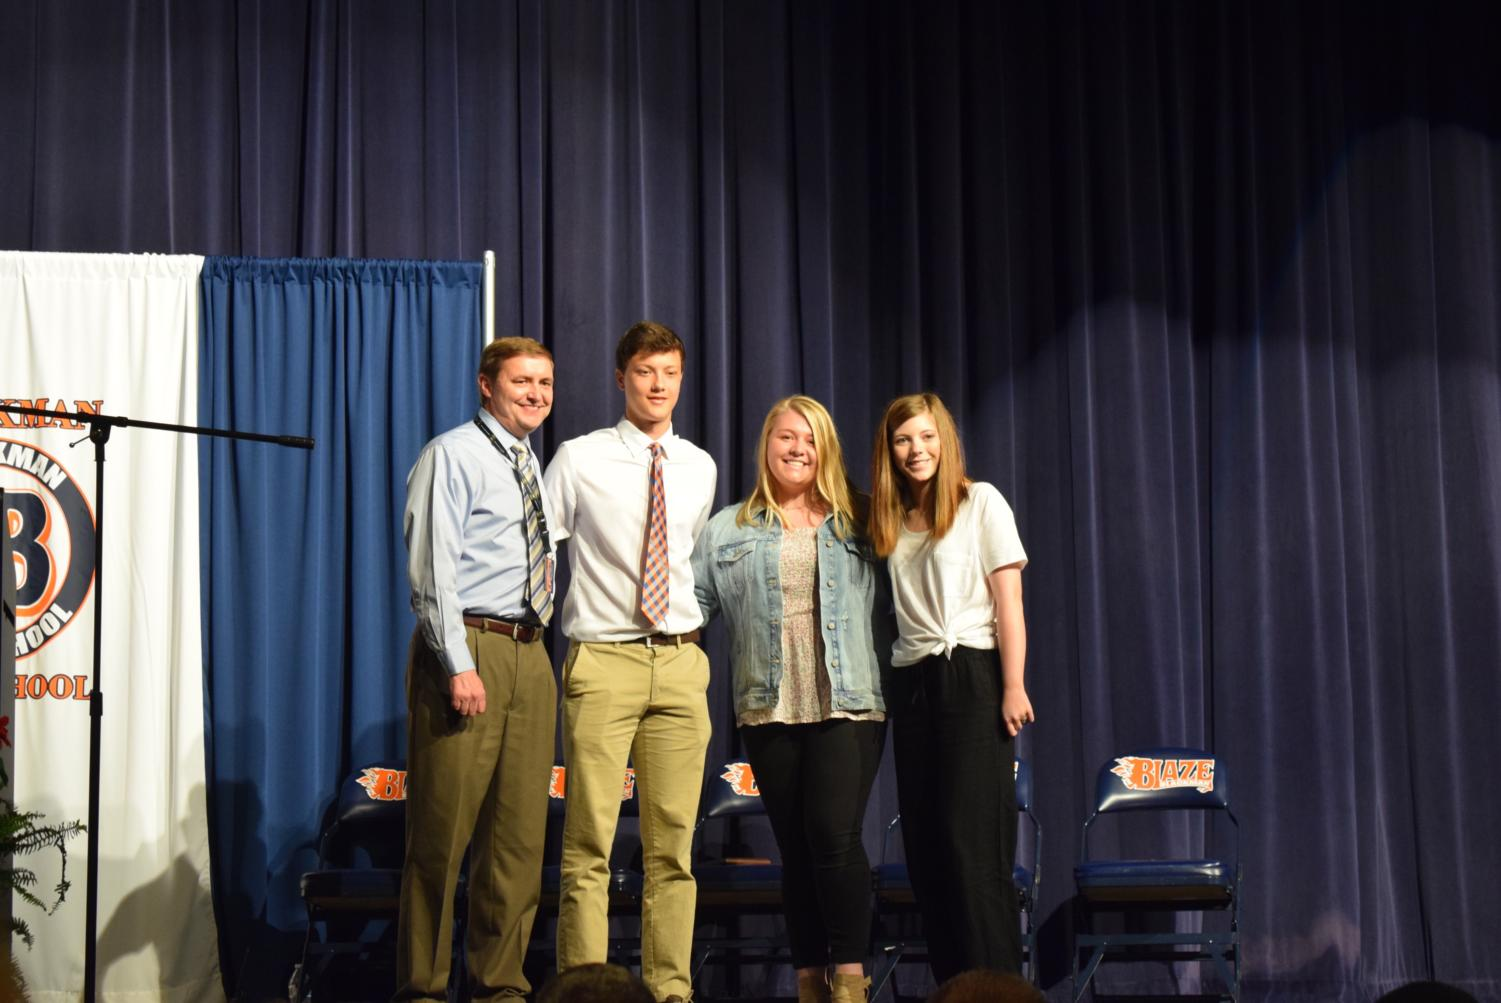 Sophomore Class Student Council: Jonathan Burks, Mollie Stone, and Allyson Rome.